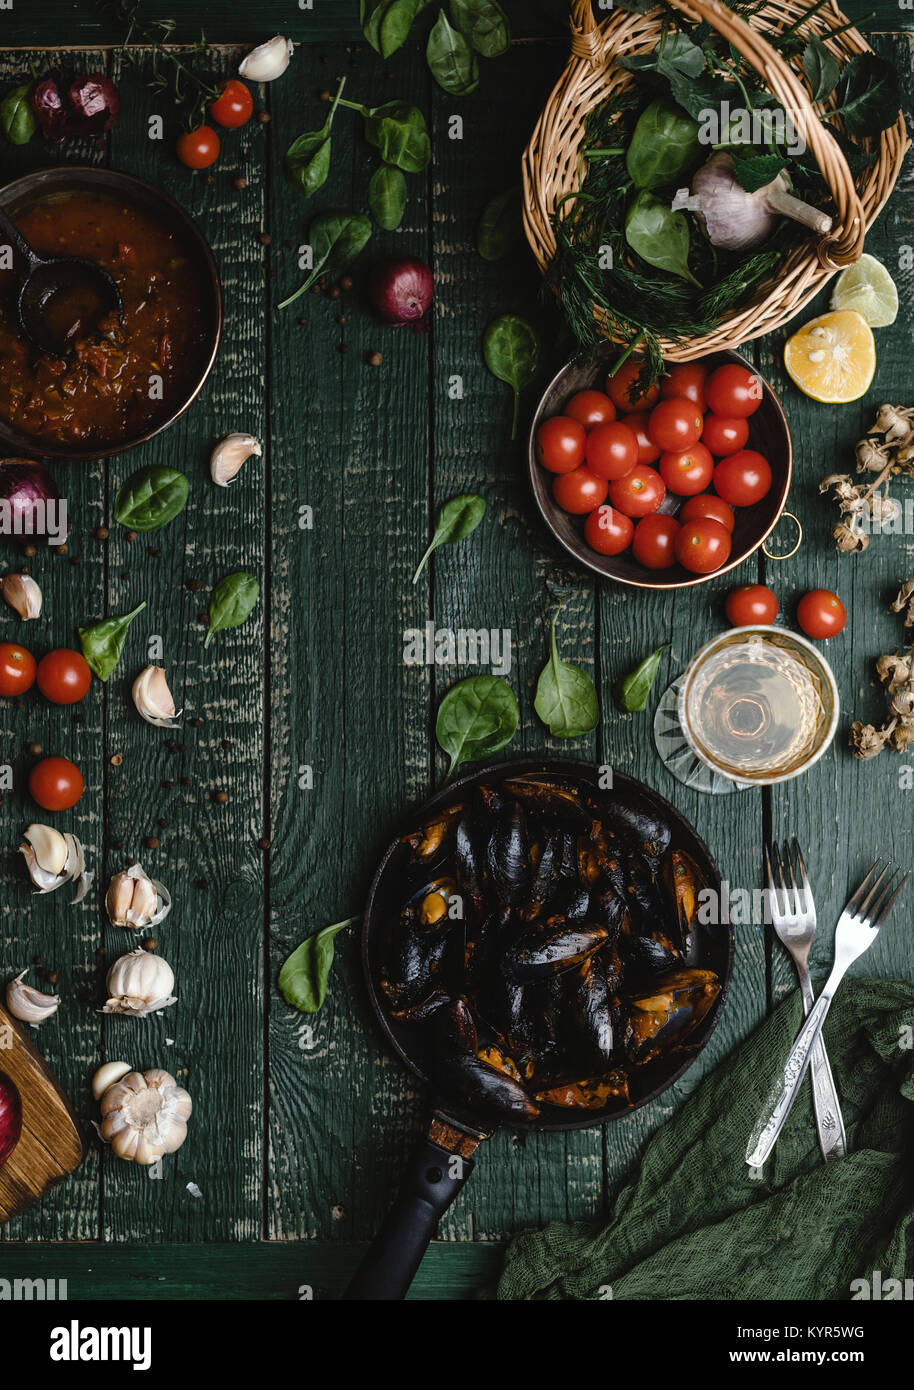 Top view of cooked mussels with shells served in pan with tomatoes, herbs and wine on wooden table - Stock Image